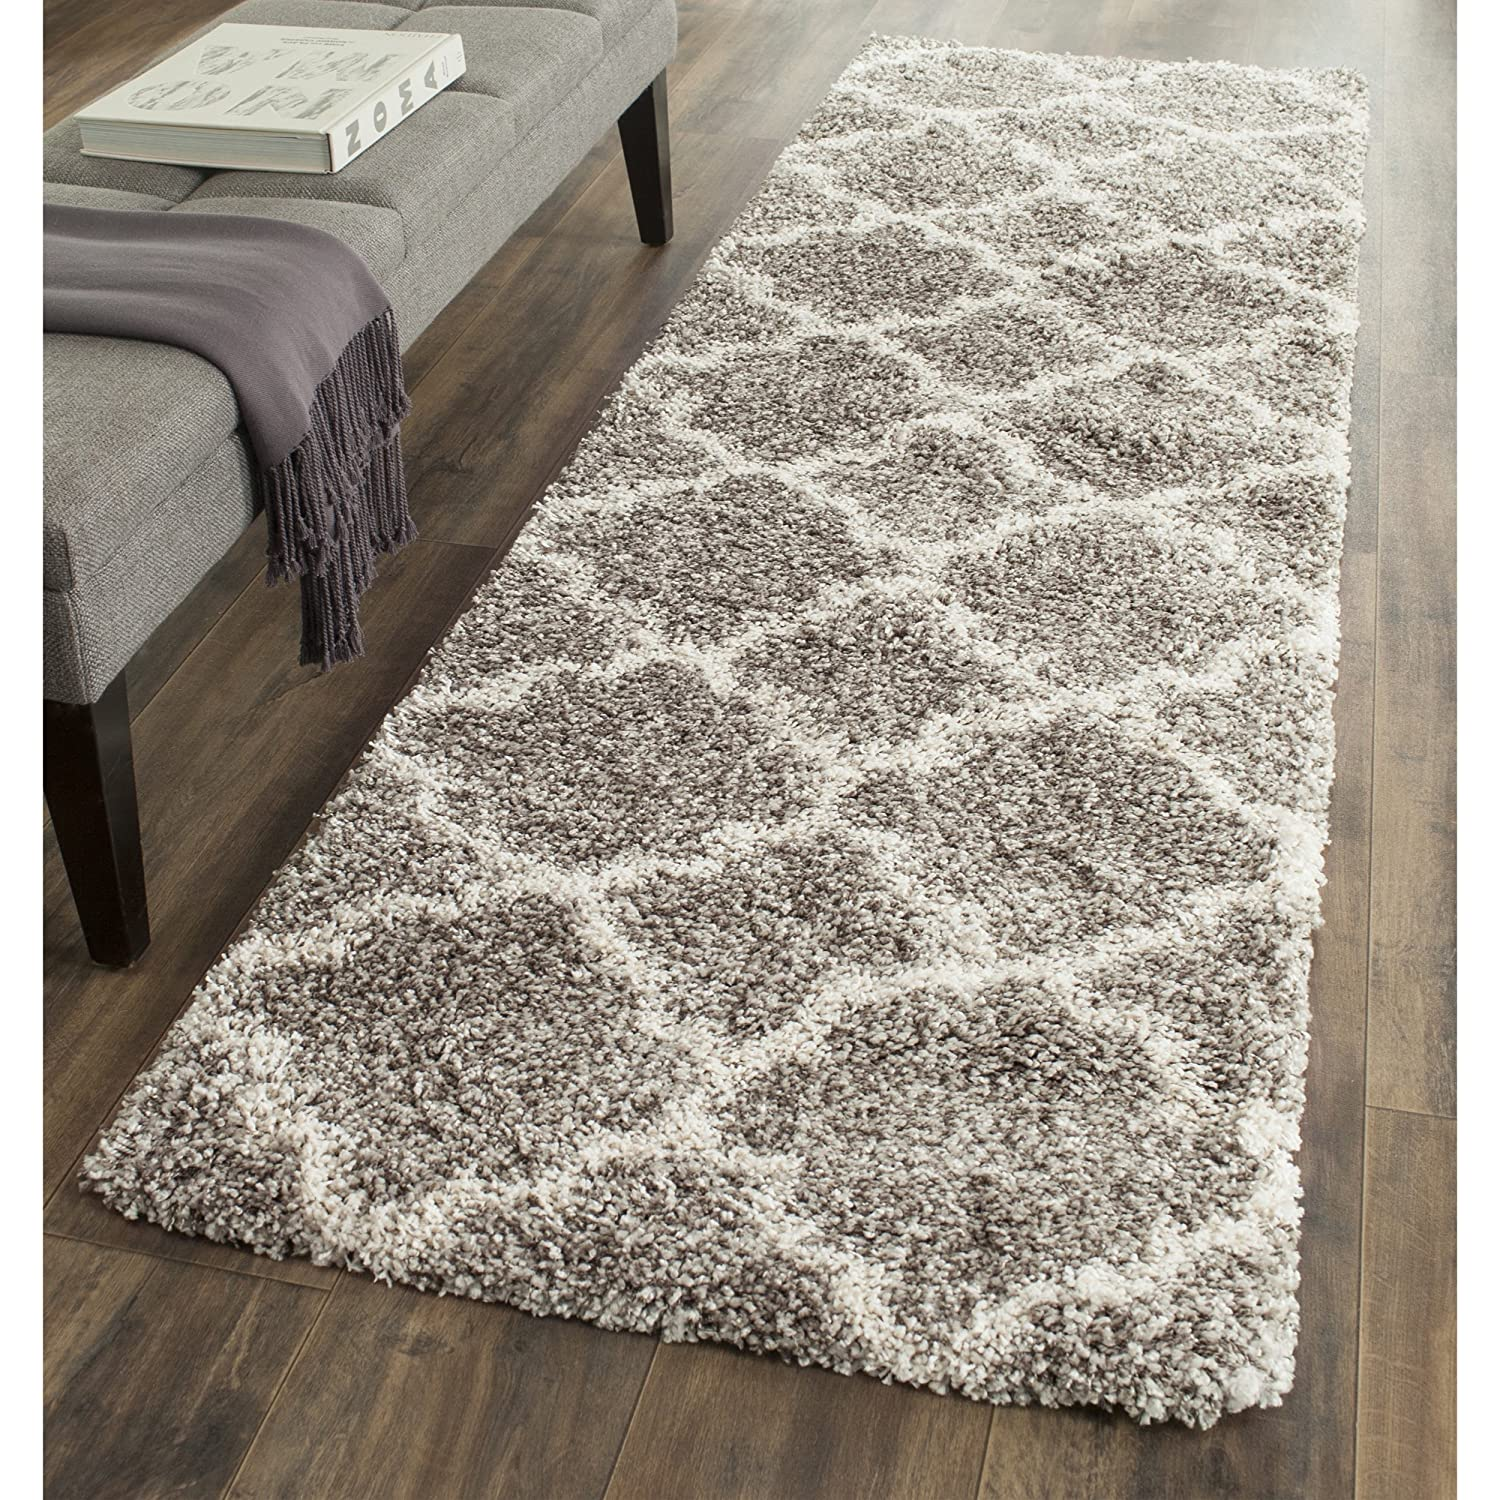 solid charcoal high carpet shag cozy grey gray quality products polypropylene rug